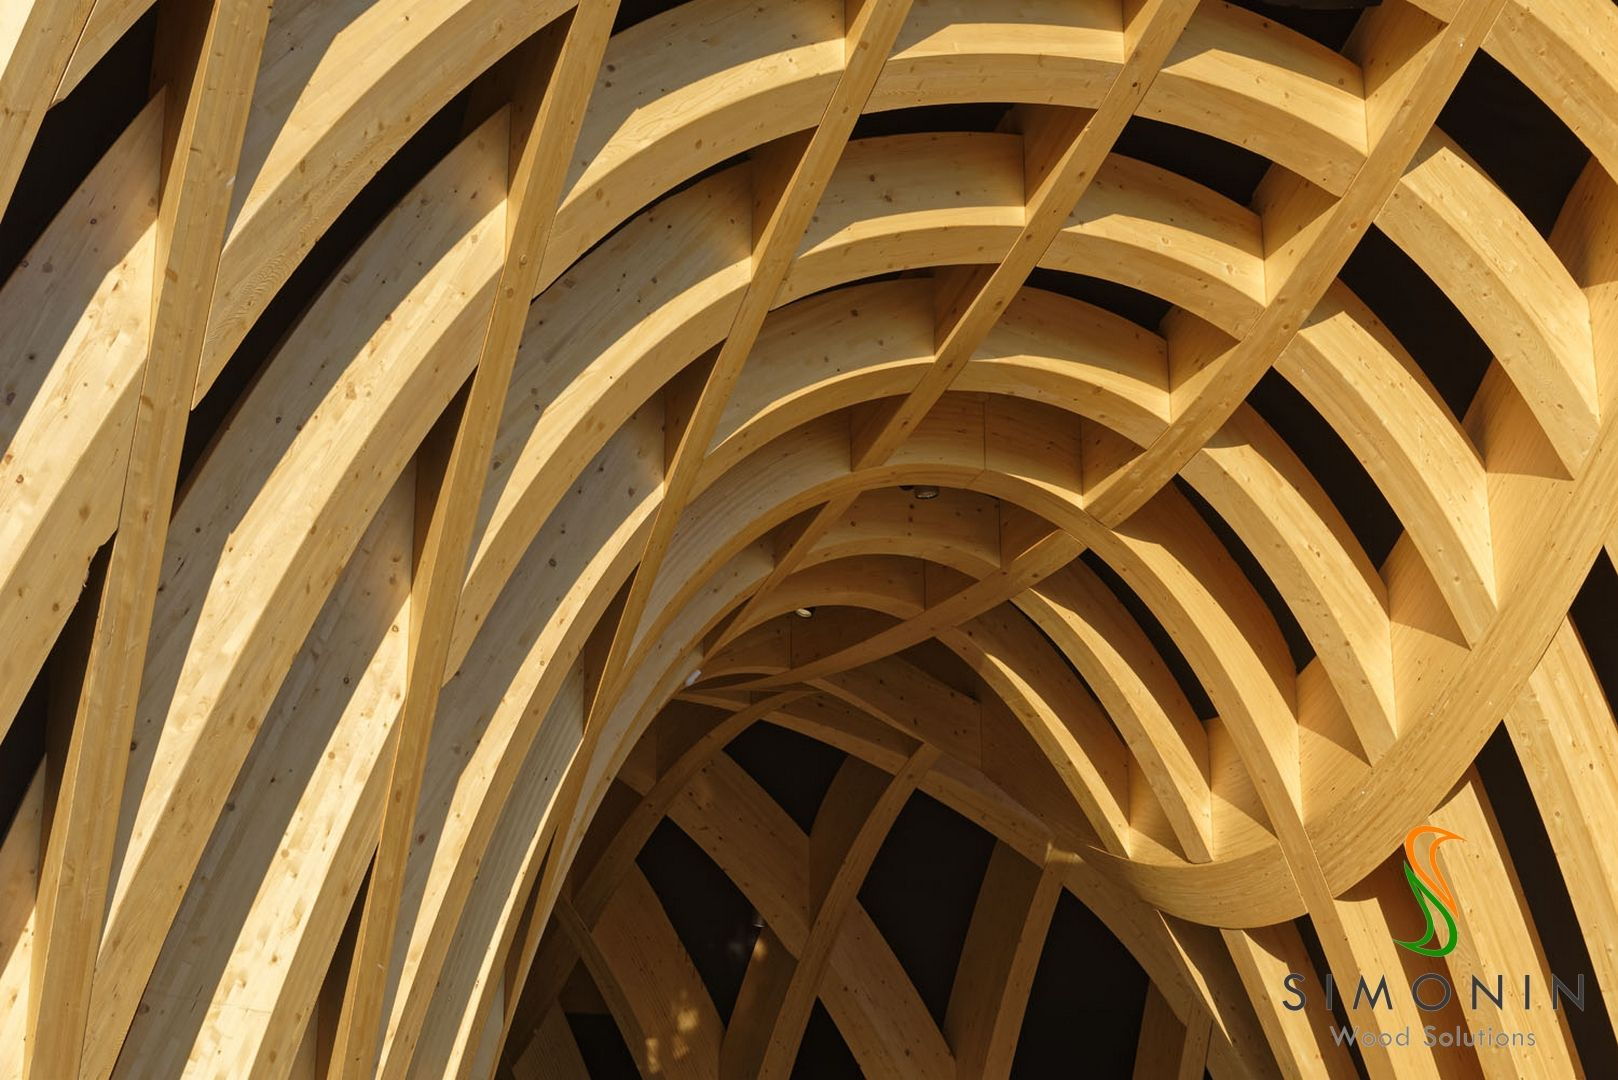 Simonin Made These Single And Double Curved Wooden Glulam